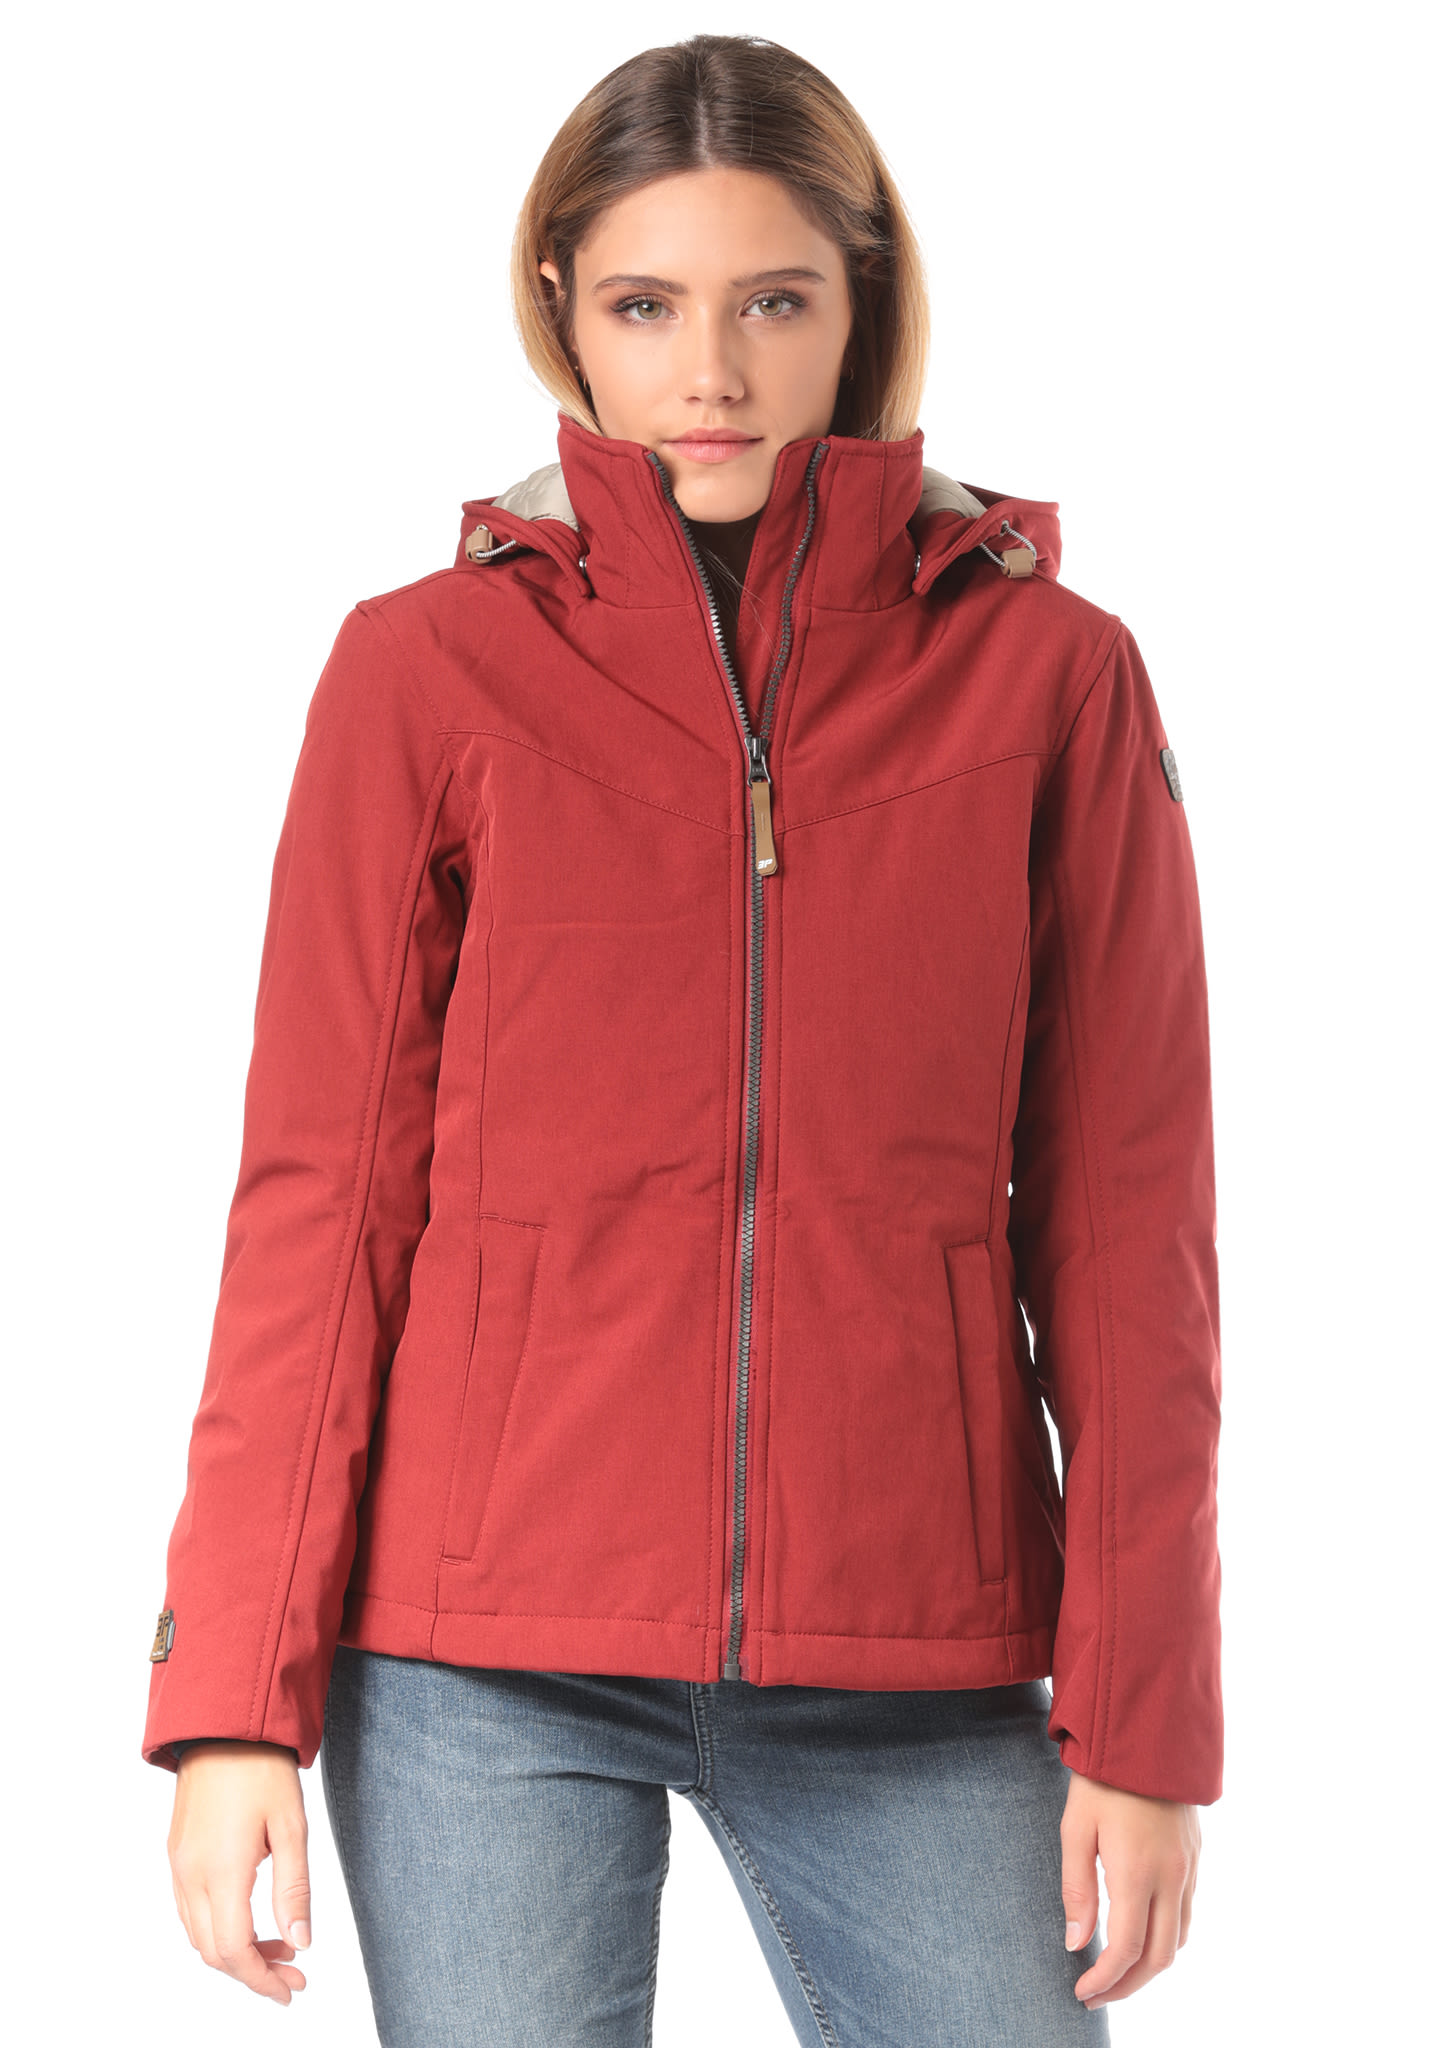 Tecnica Per Planet Xawpw Giacca Rosso Icepeak Donna Sports Taya rPAfP